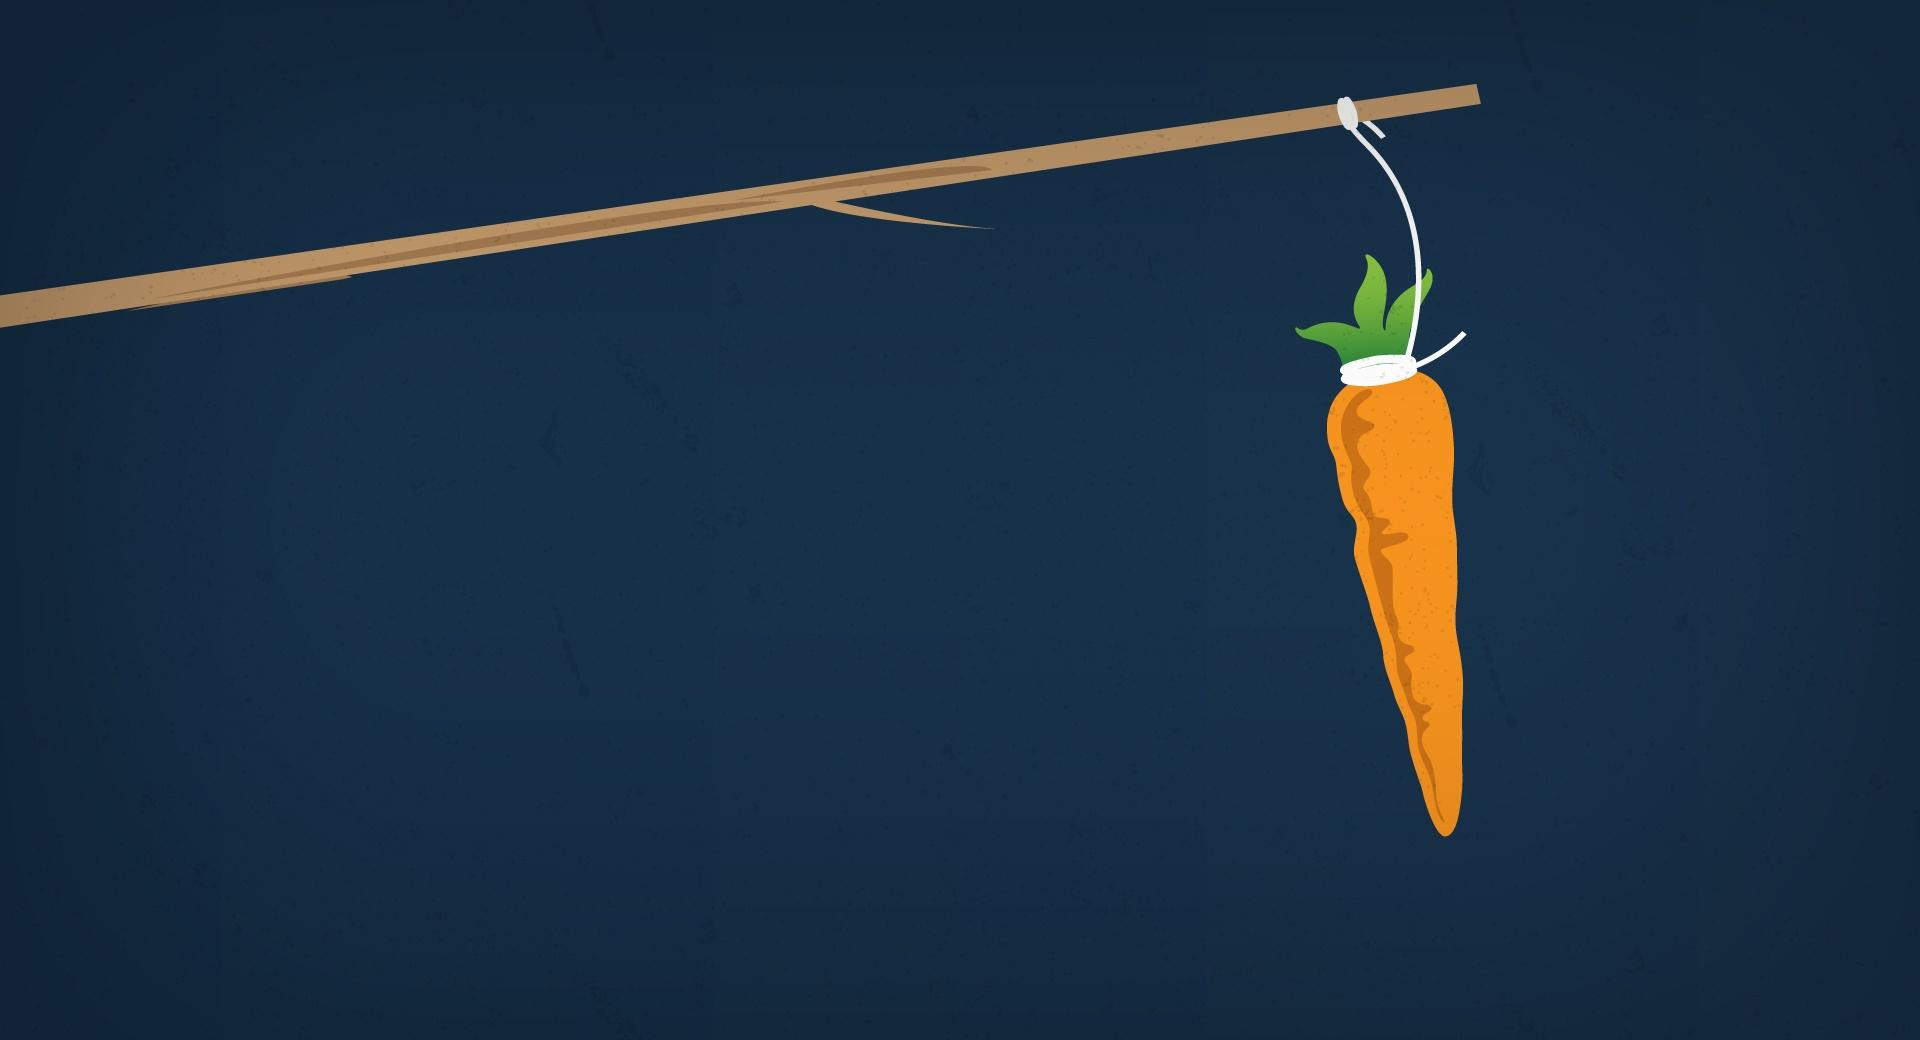 Carrot on a Stick wallpapers HD quality